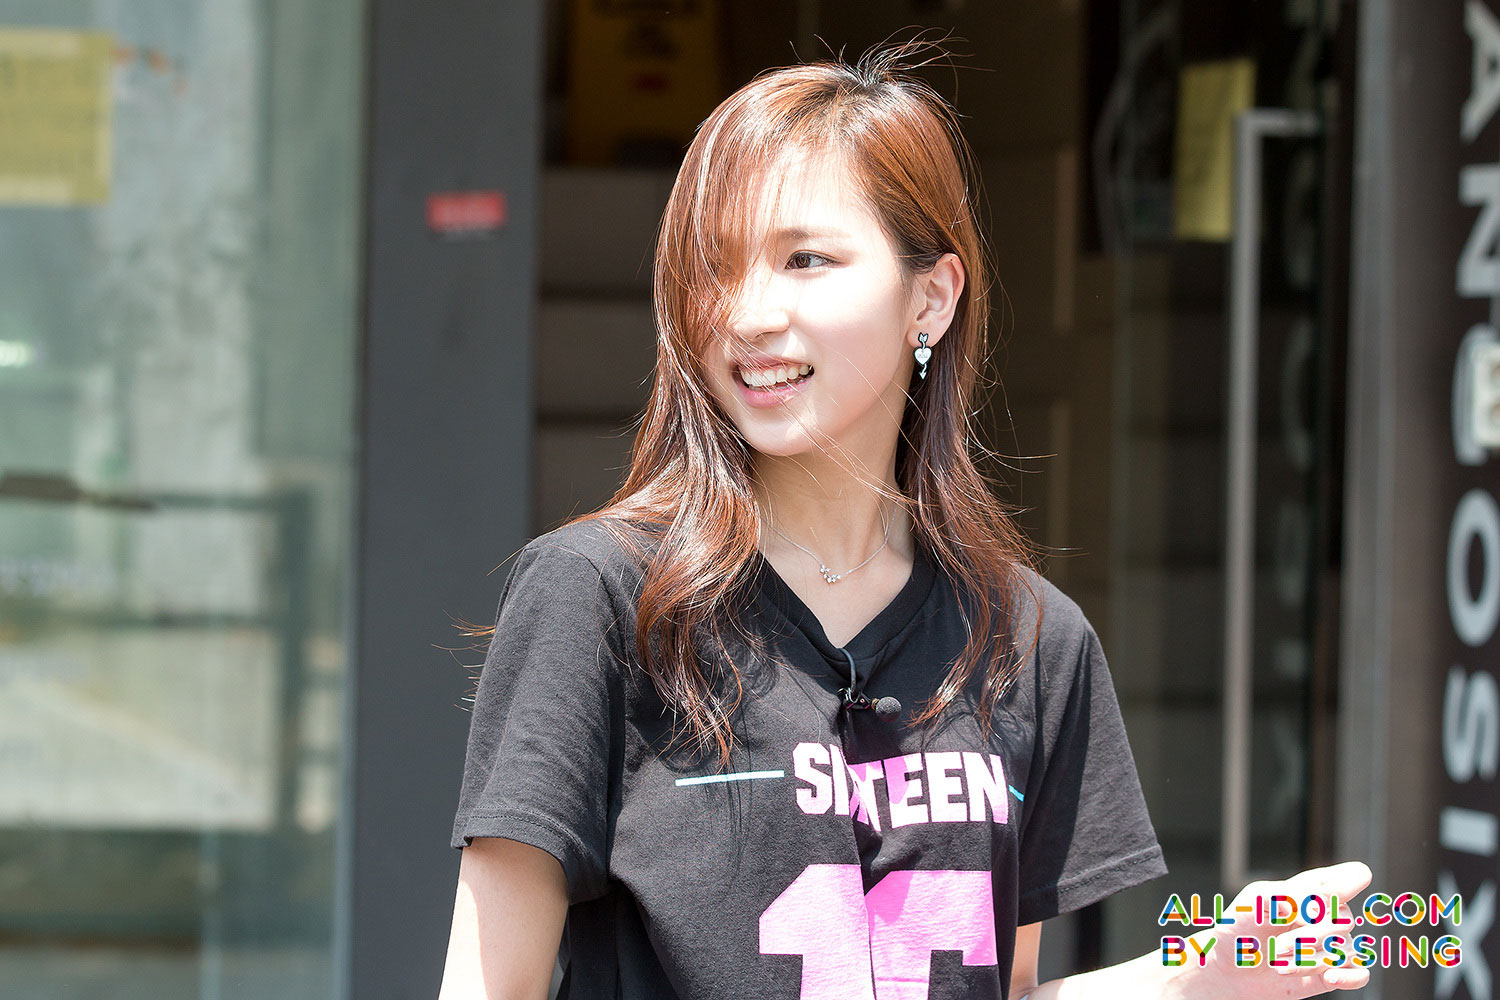 Twice Sixteen Mina street promotion event